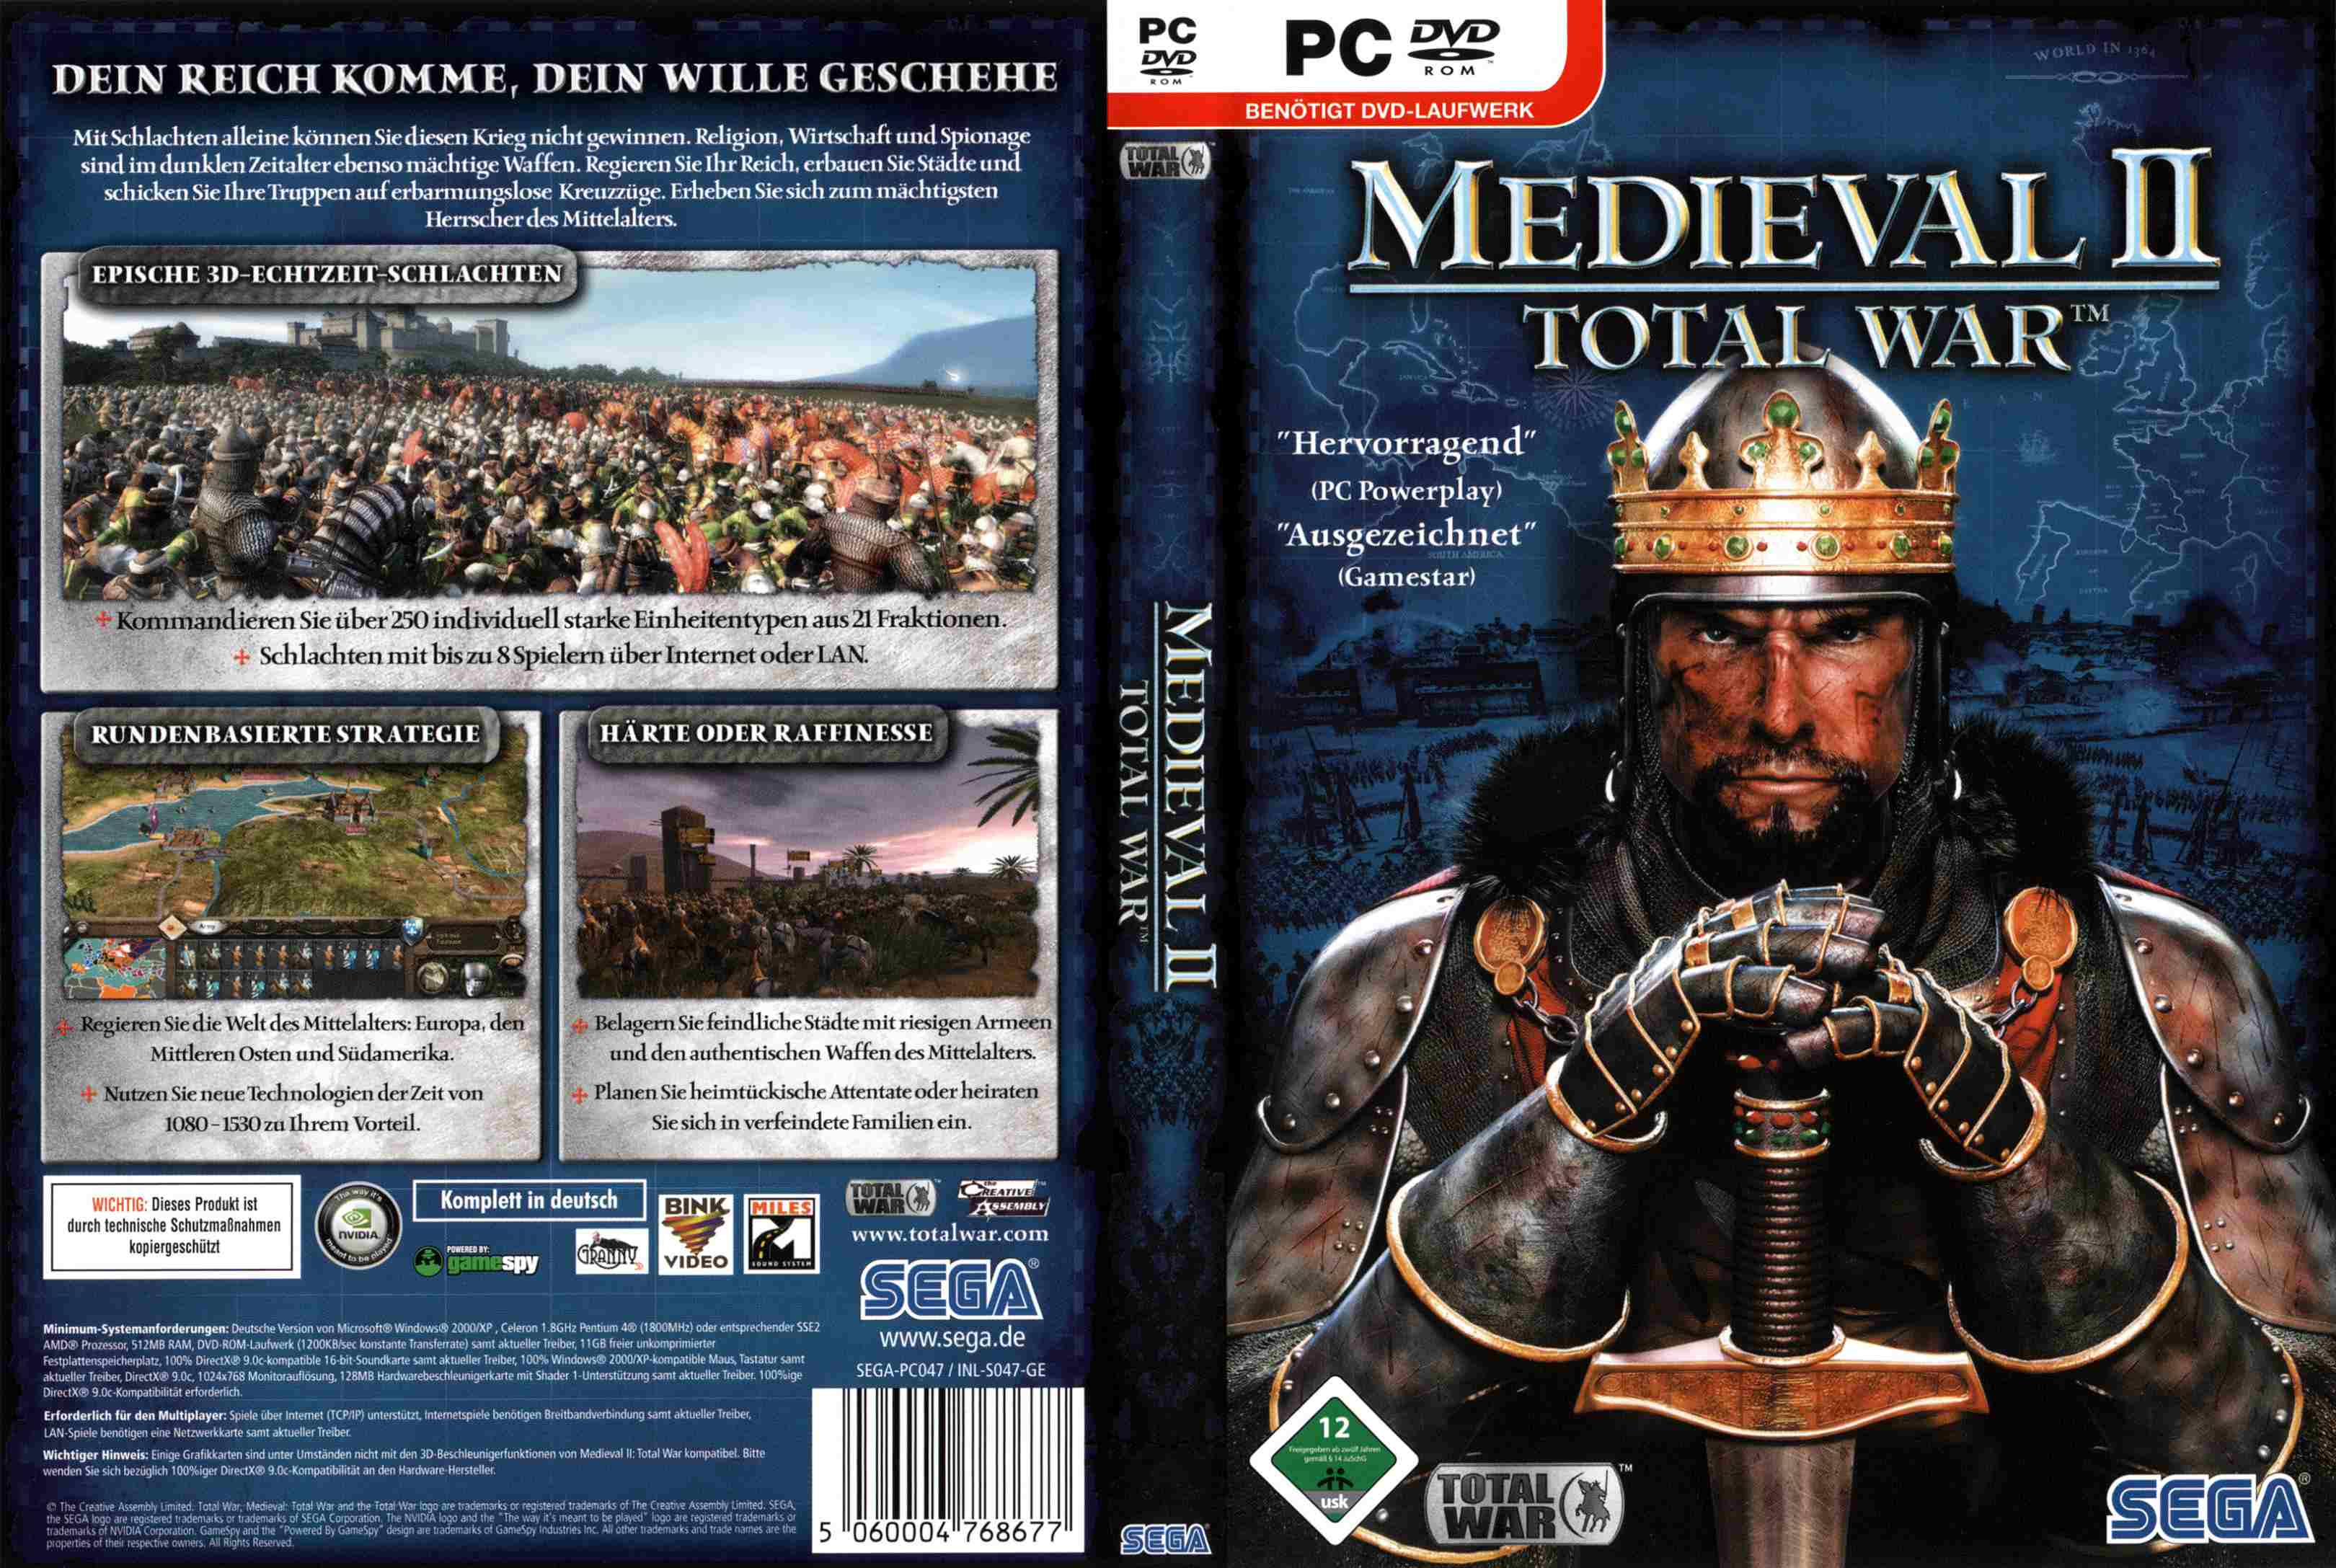 Medieval 2 Total War Pc Dvd Cover | PC Covers | Cover